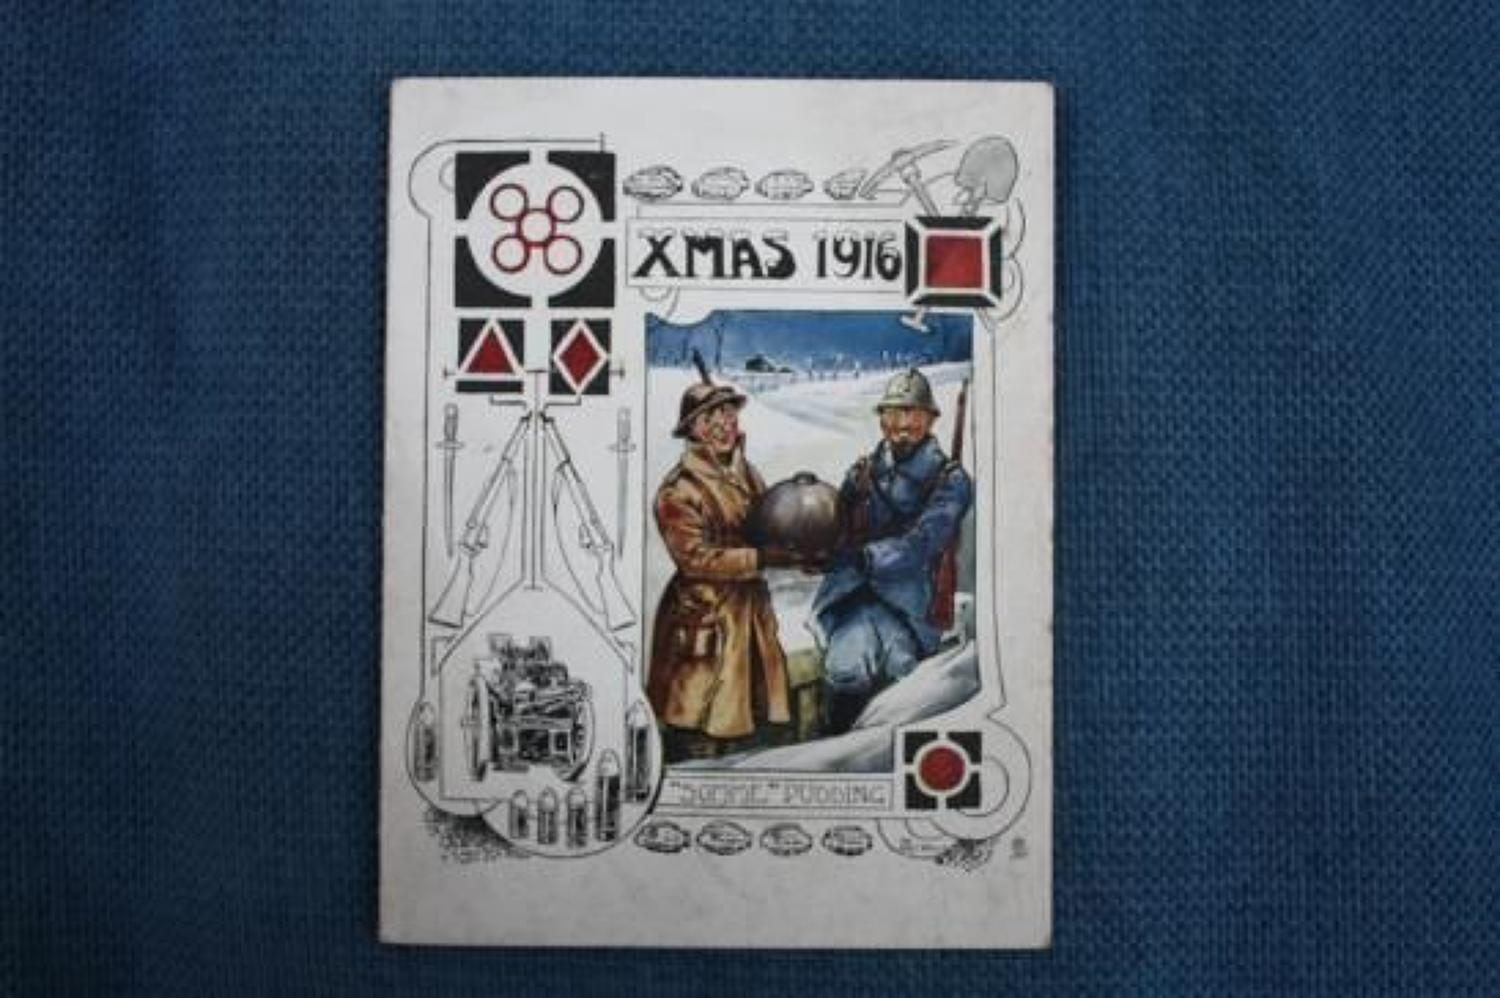 WW1 British Army 32nd Division Christmas Card 1916.